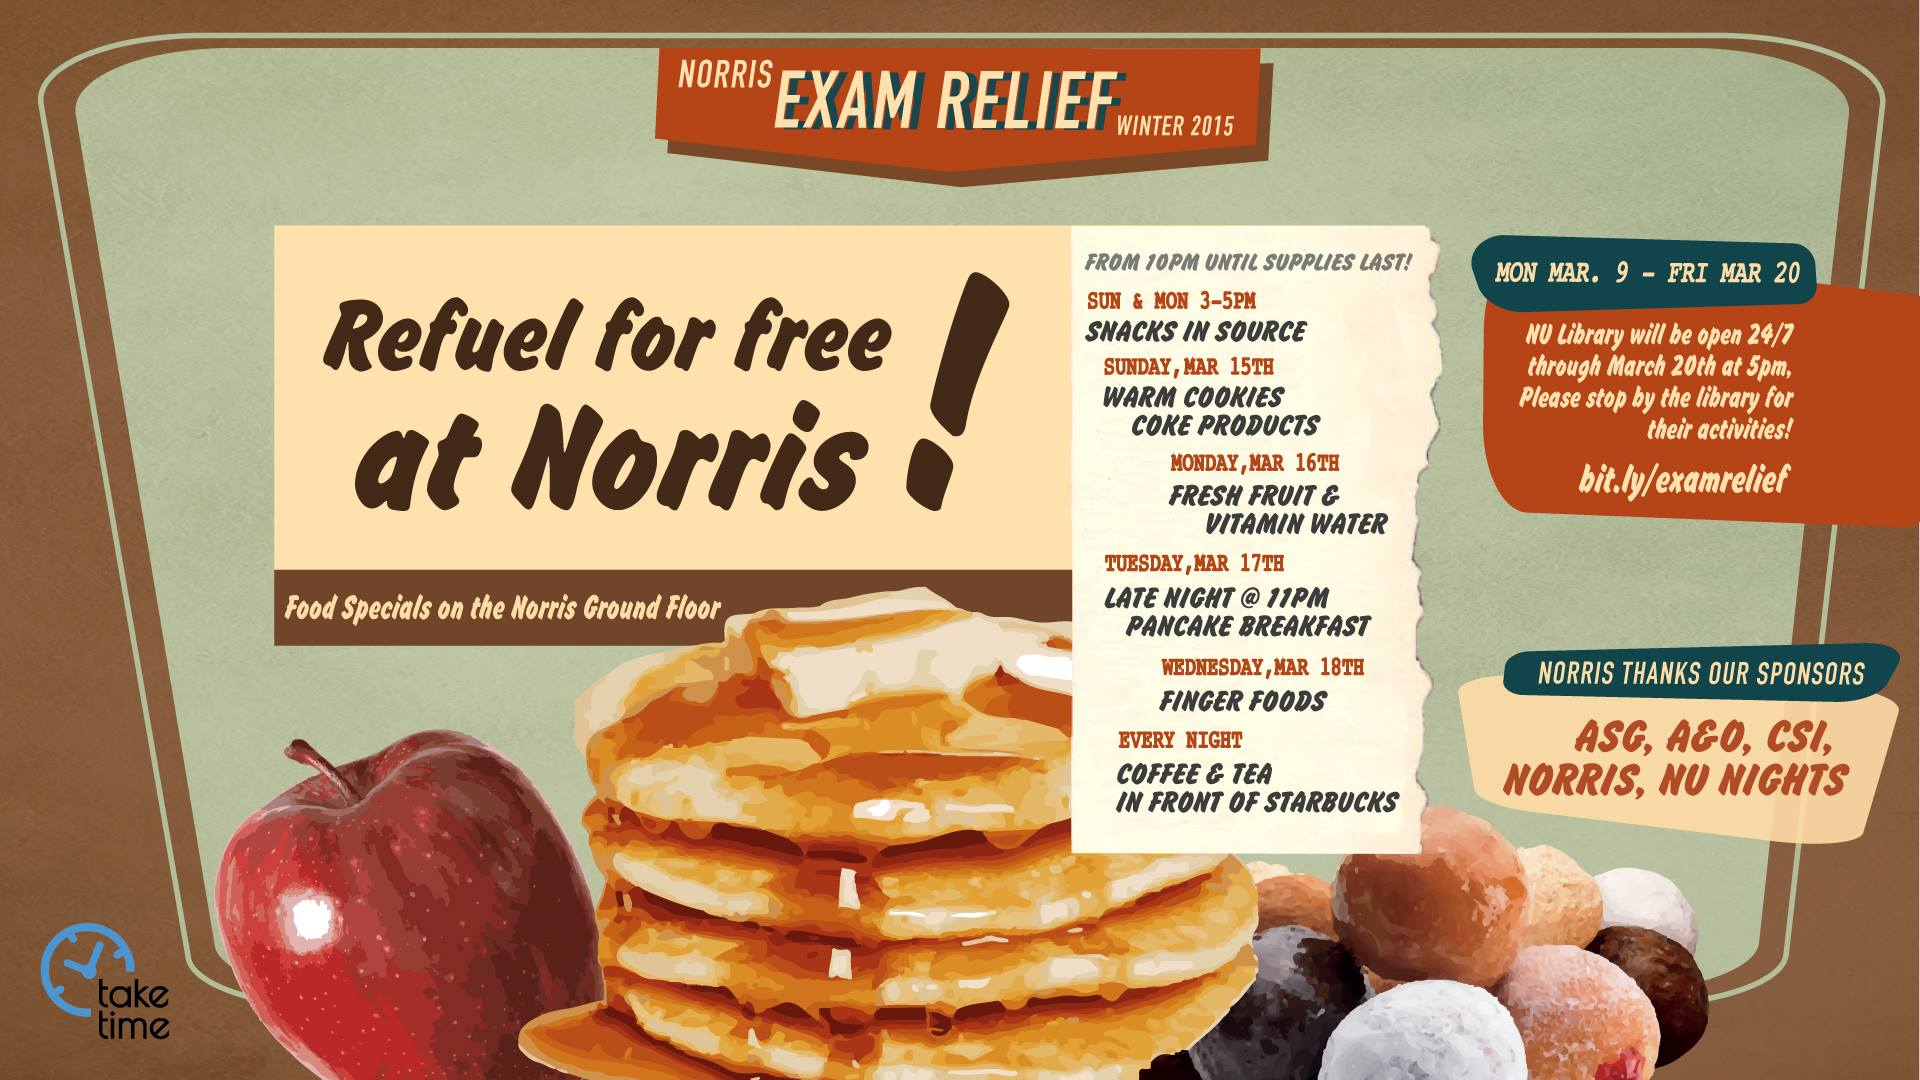 Taylor: Exam Relief Late Night Breakfast